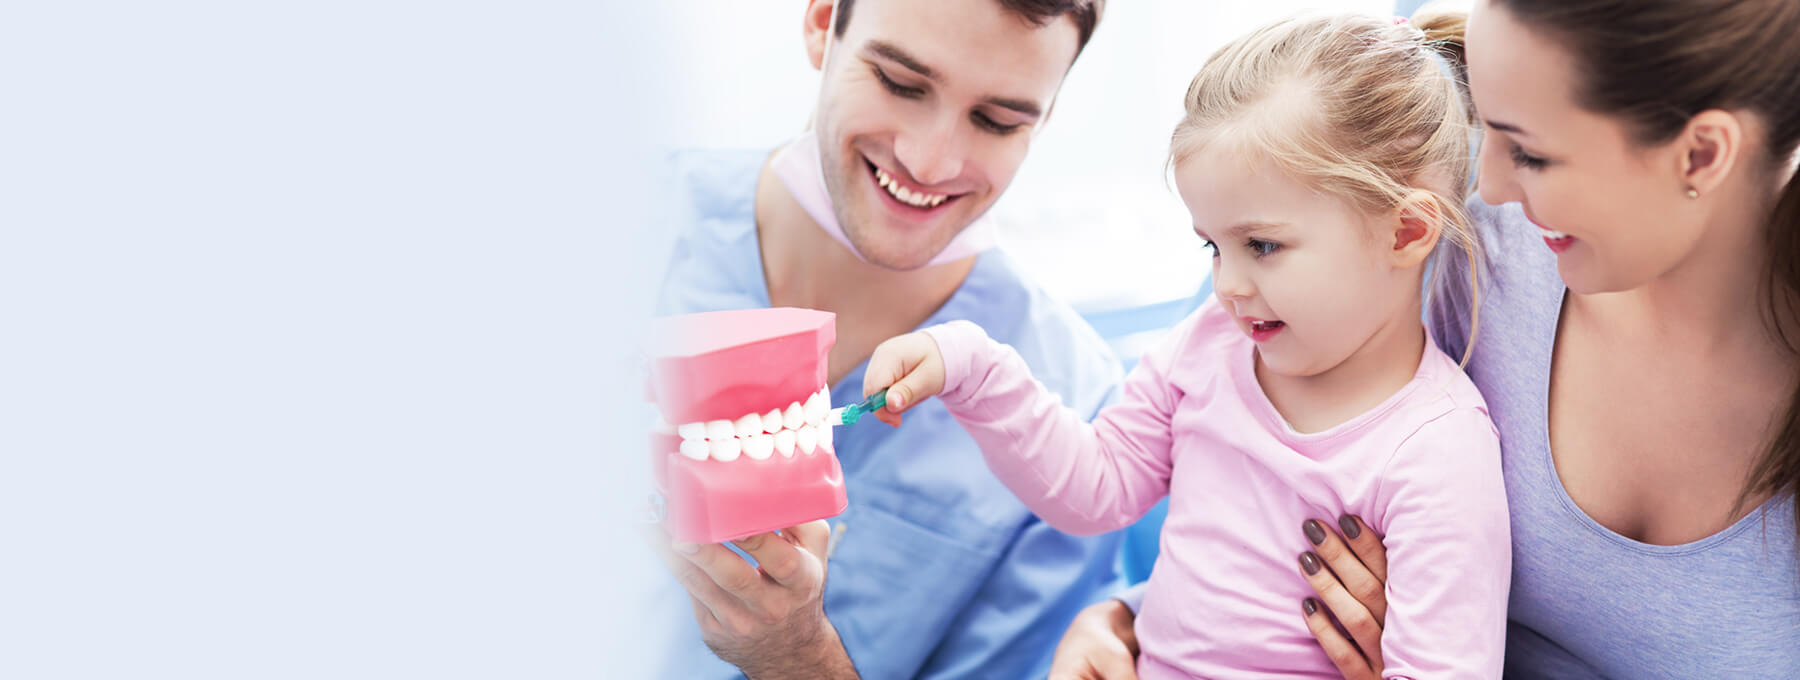 Dental Implants Melbourne Experts Are talking about ways to select the best treatment centre